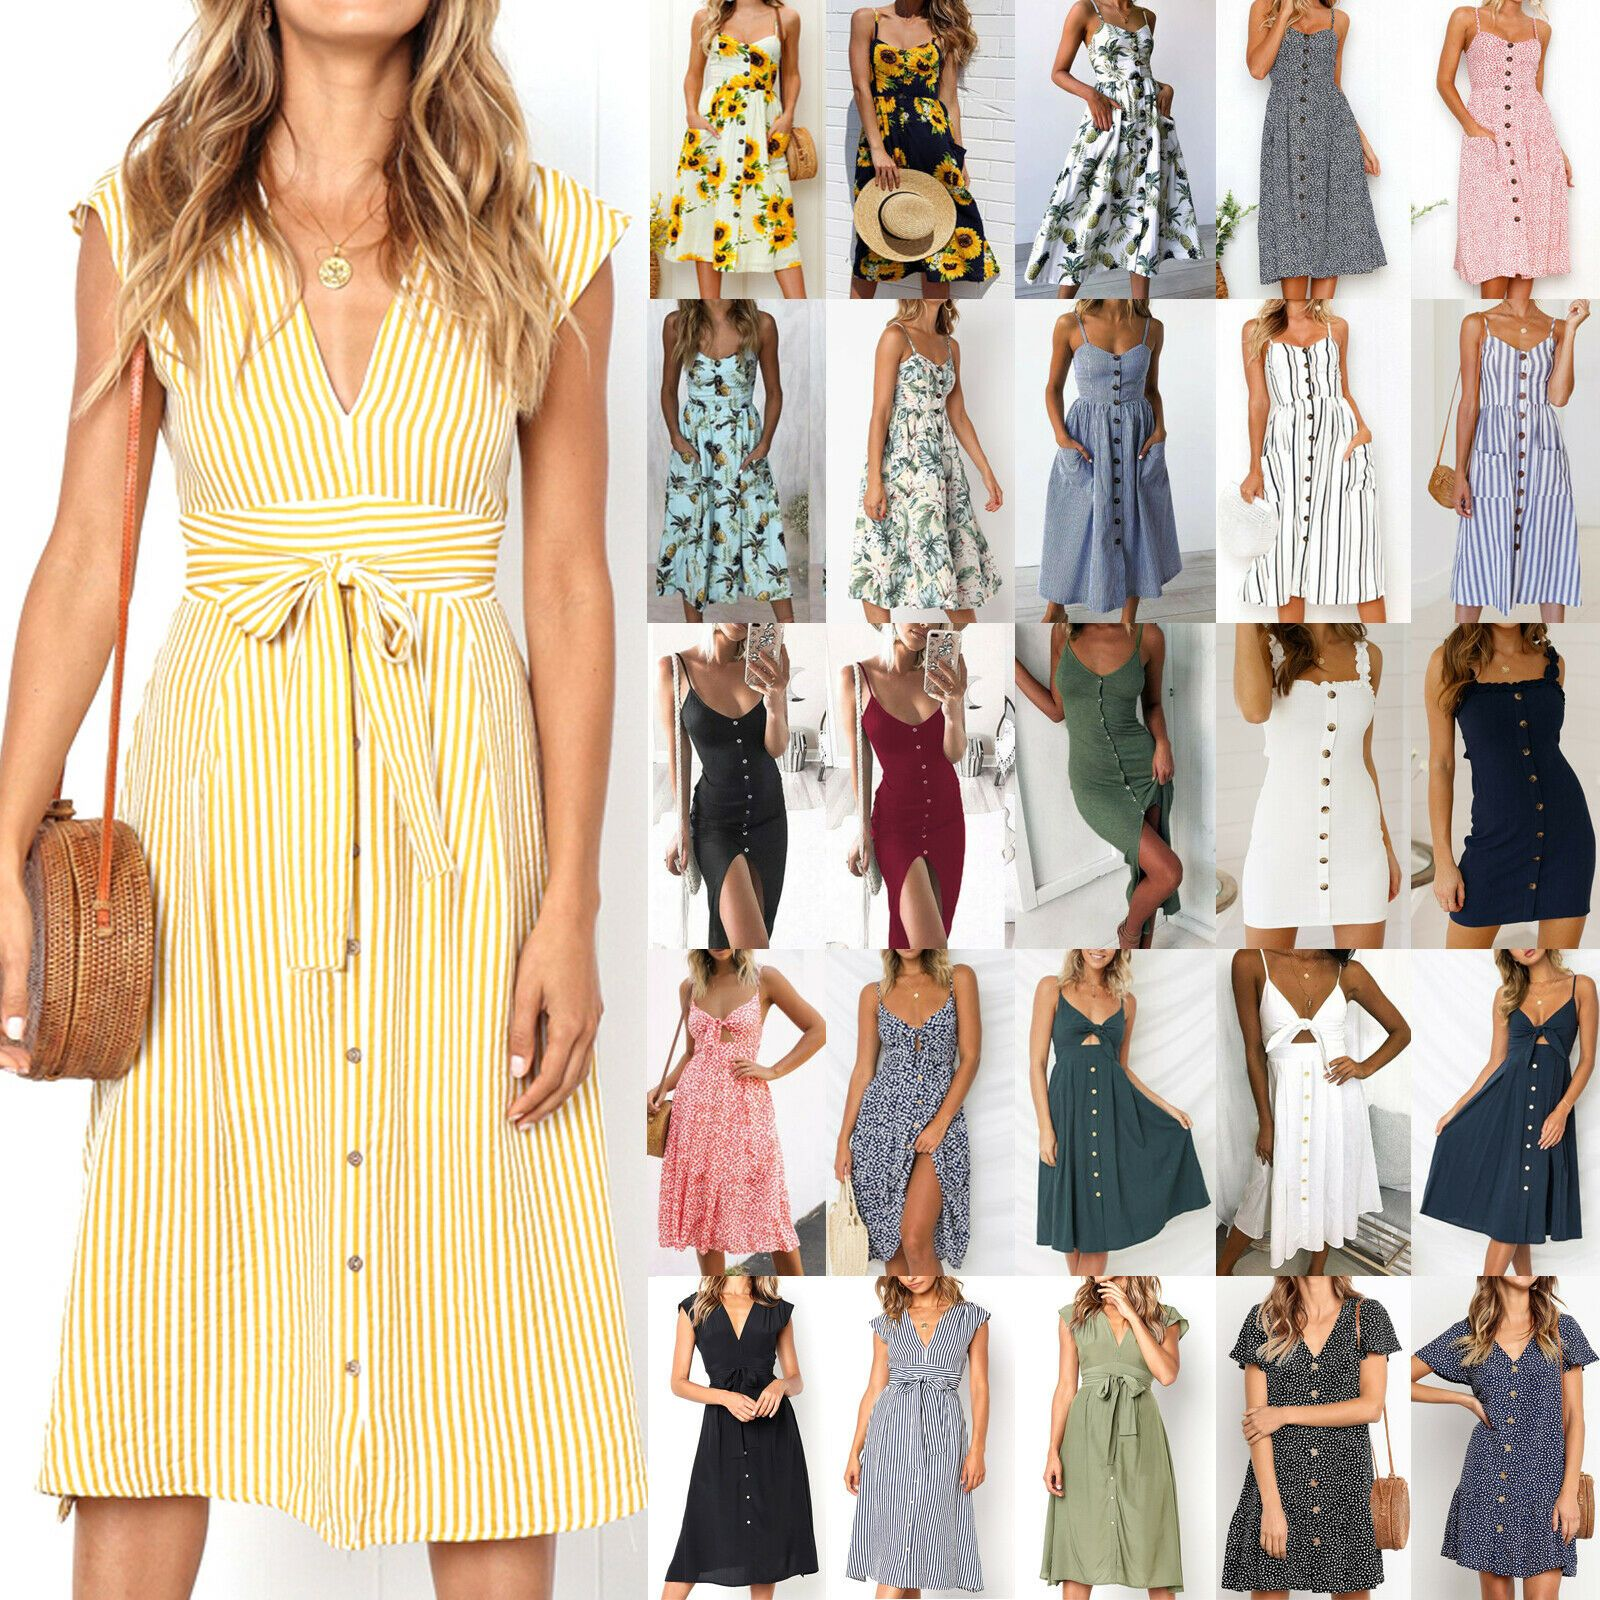 Summer Lounger Beach Patio Dress S 3xl Made In Usa Midi Dresses Shop For Midi Dresses For Sales Midi Summer Dresses Midi Dress Summer Pleated Party Dress [ 1600 x 1600 Pixel ]